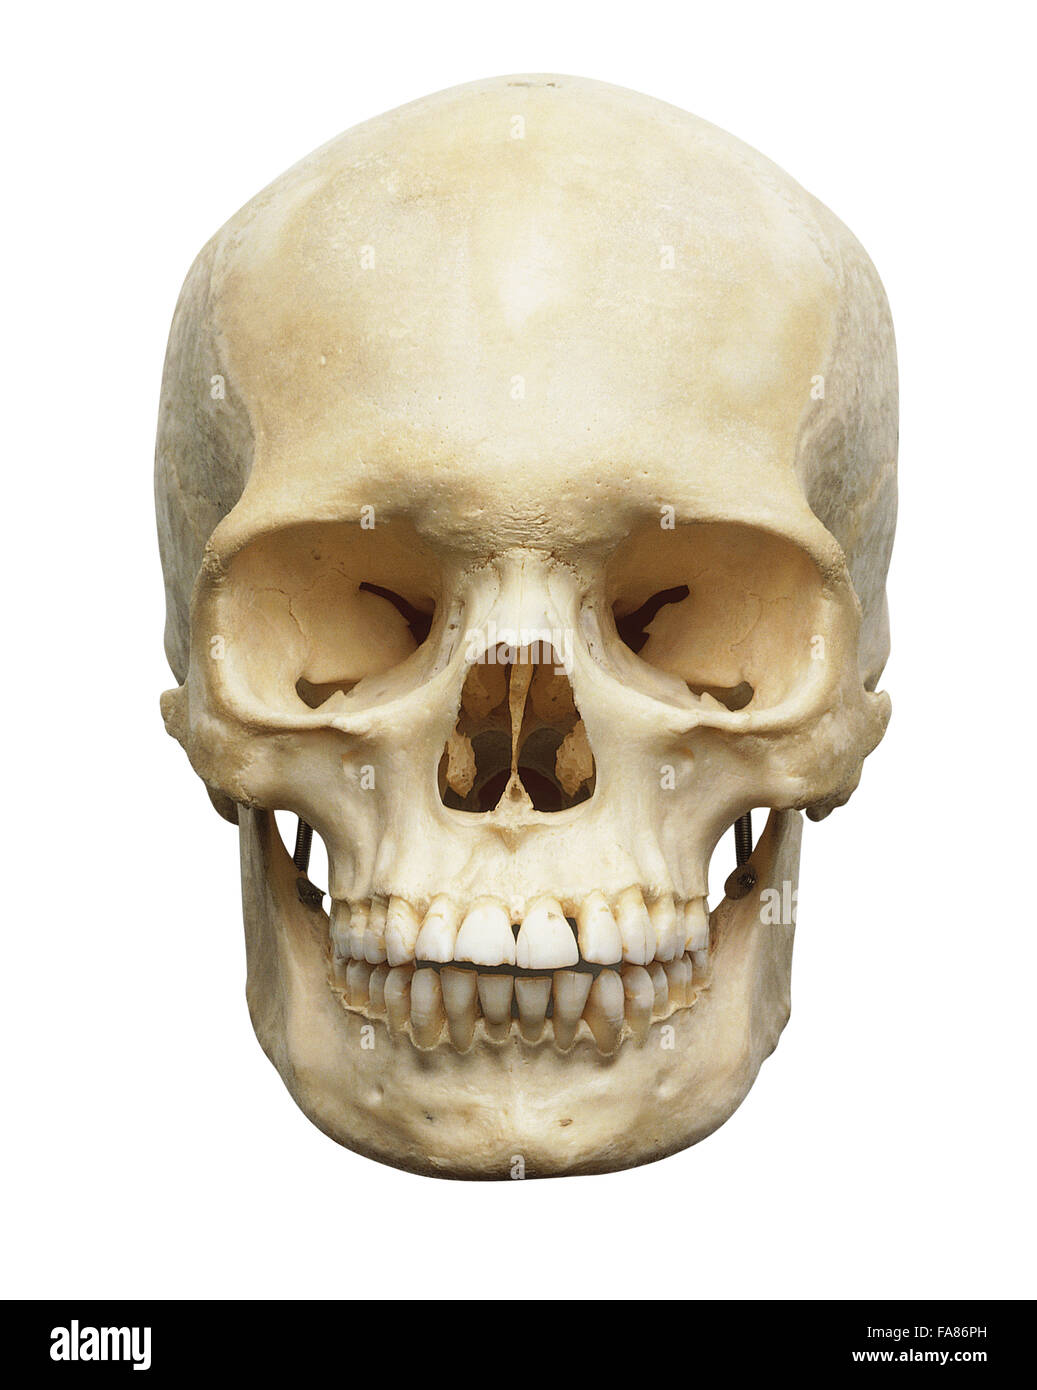 Human skull, front view Stock Photo